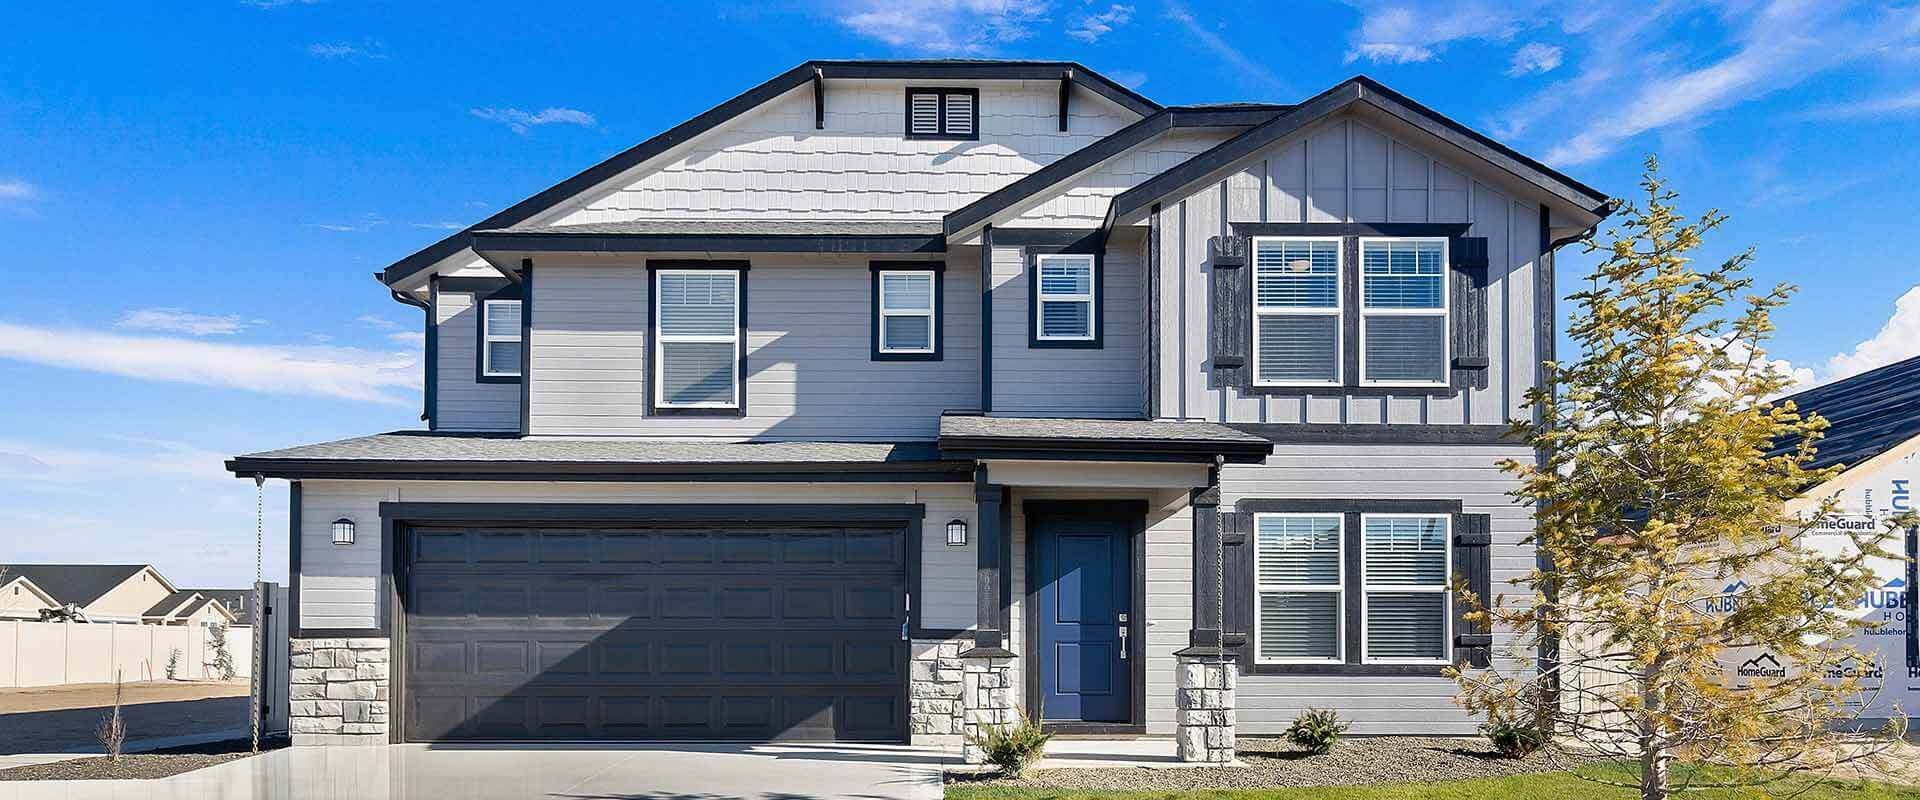 Hubble Homes Spruce Model Exterior 1920x800.jpg